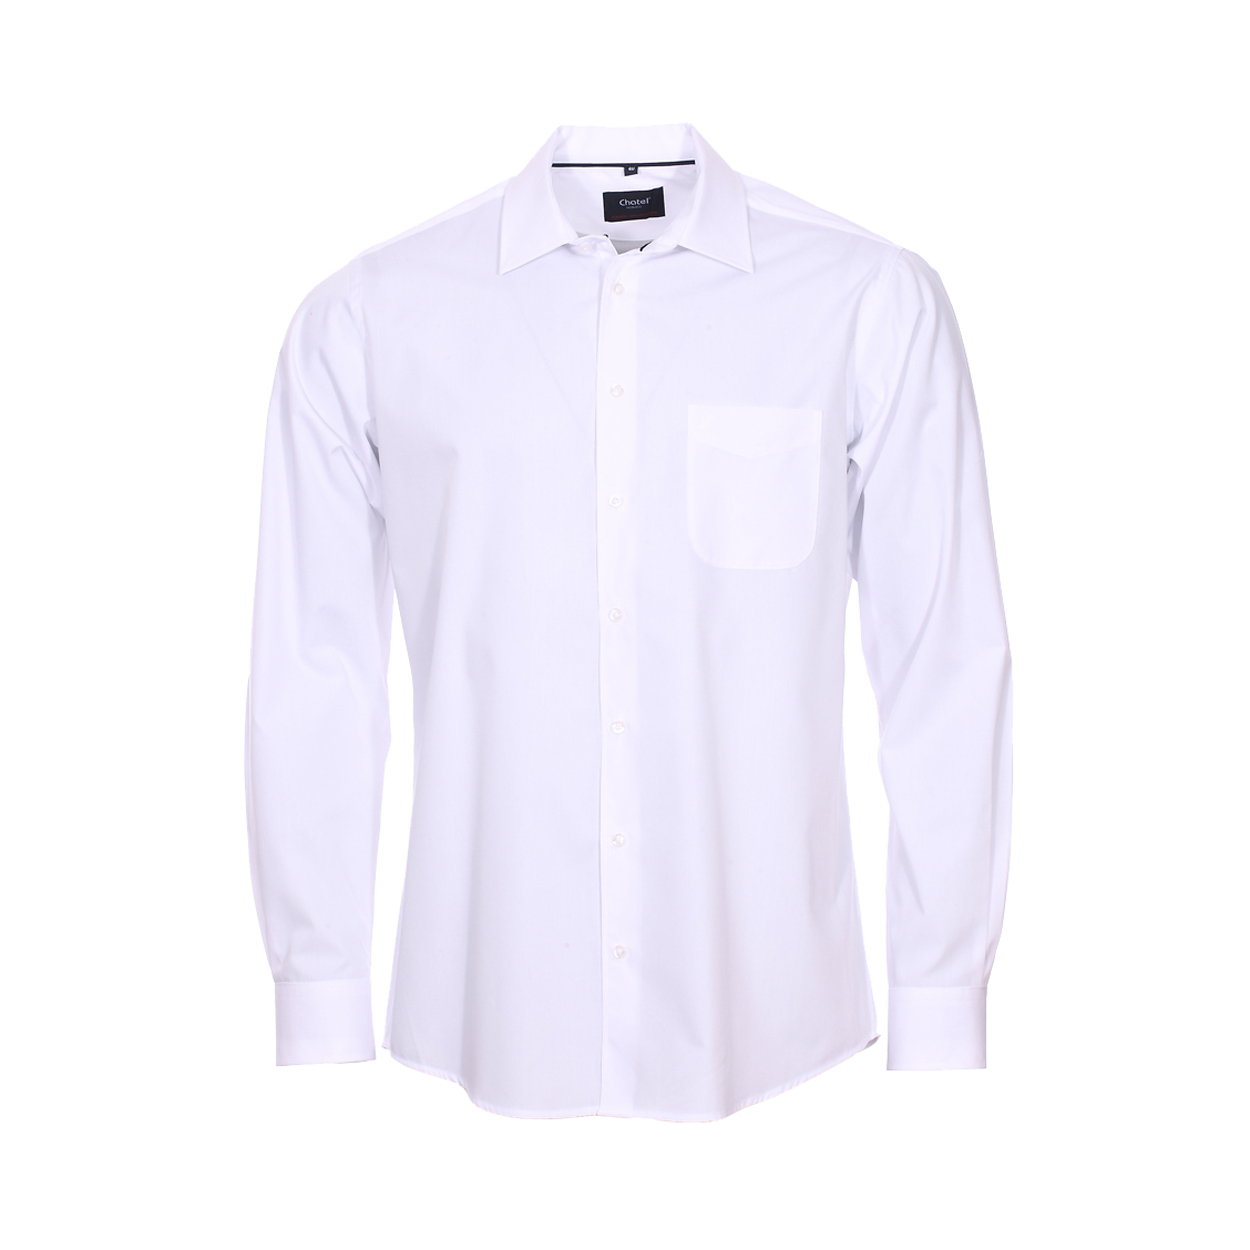 Chemise homme sans repassage  chambray blanche